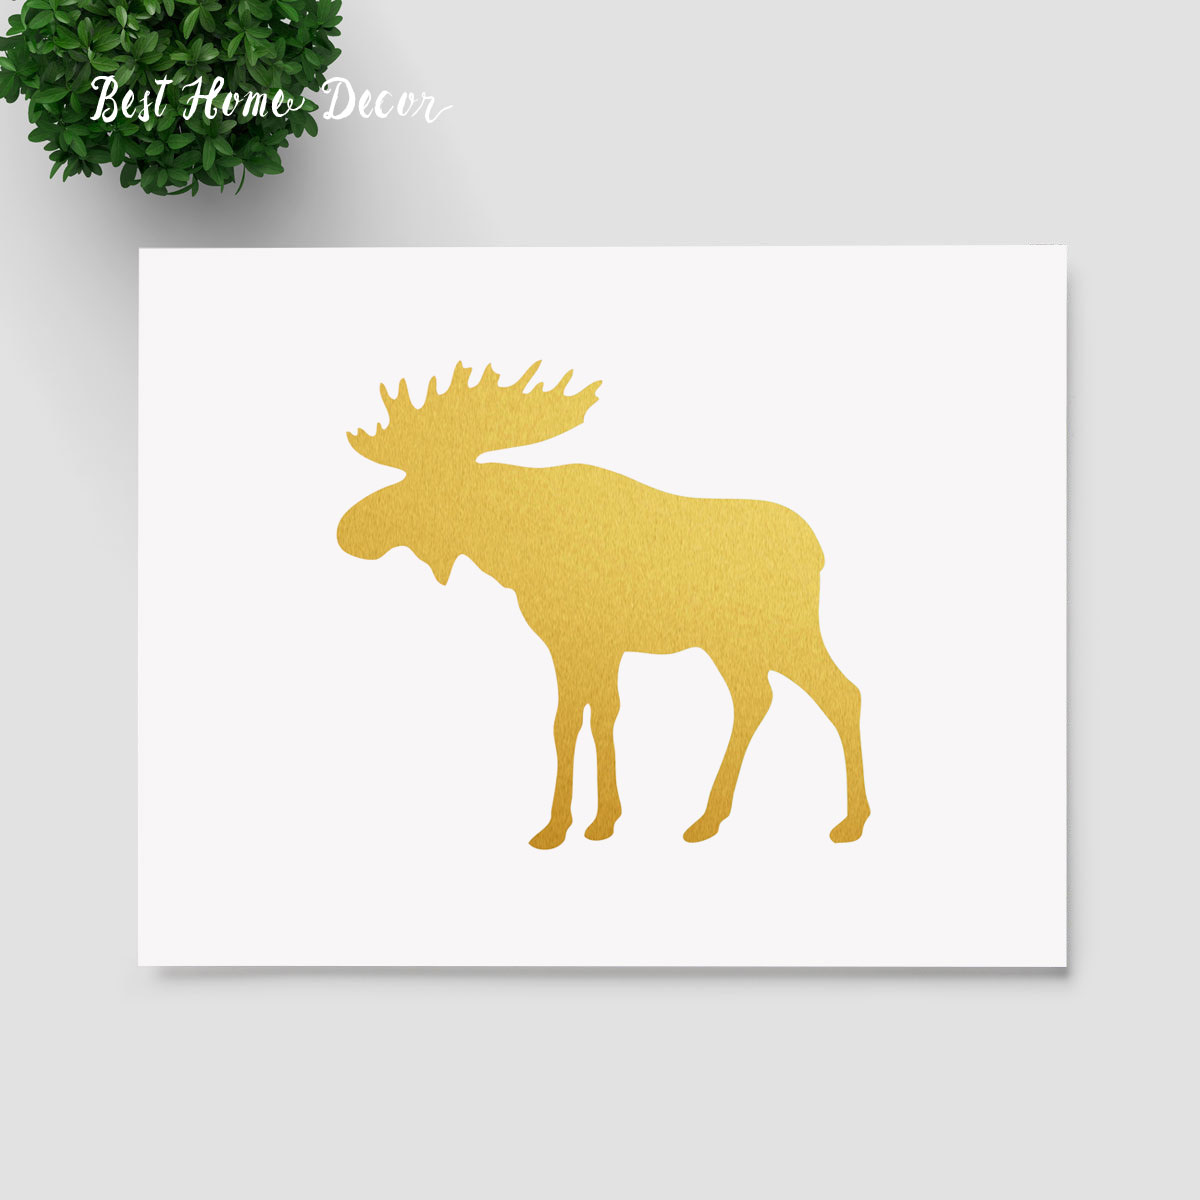 Aliexpress Buy Gold Foil Moose Art Print Antlers Wall Color Poster Animal Hanging No Framed AP089 From